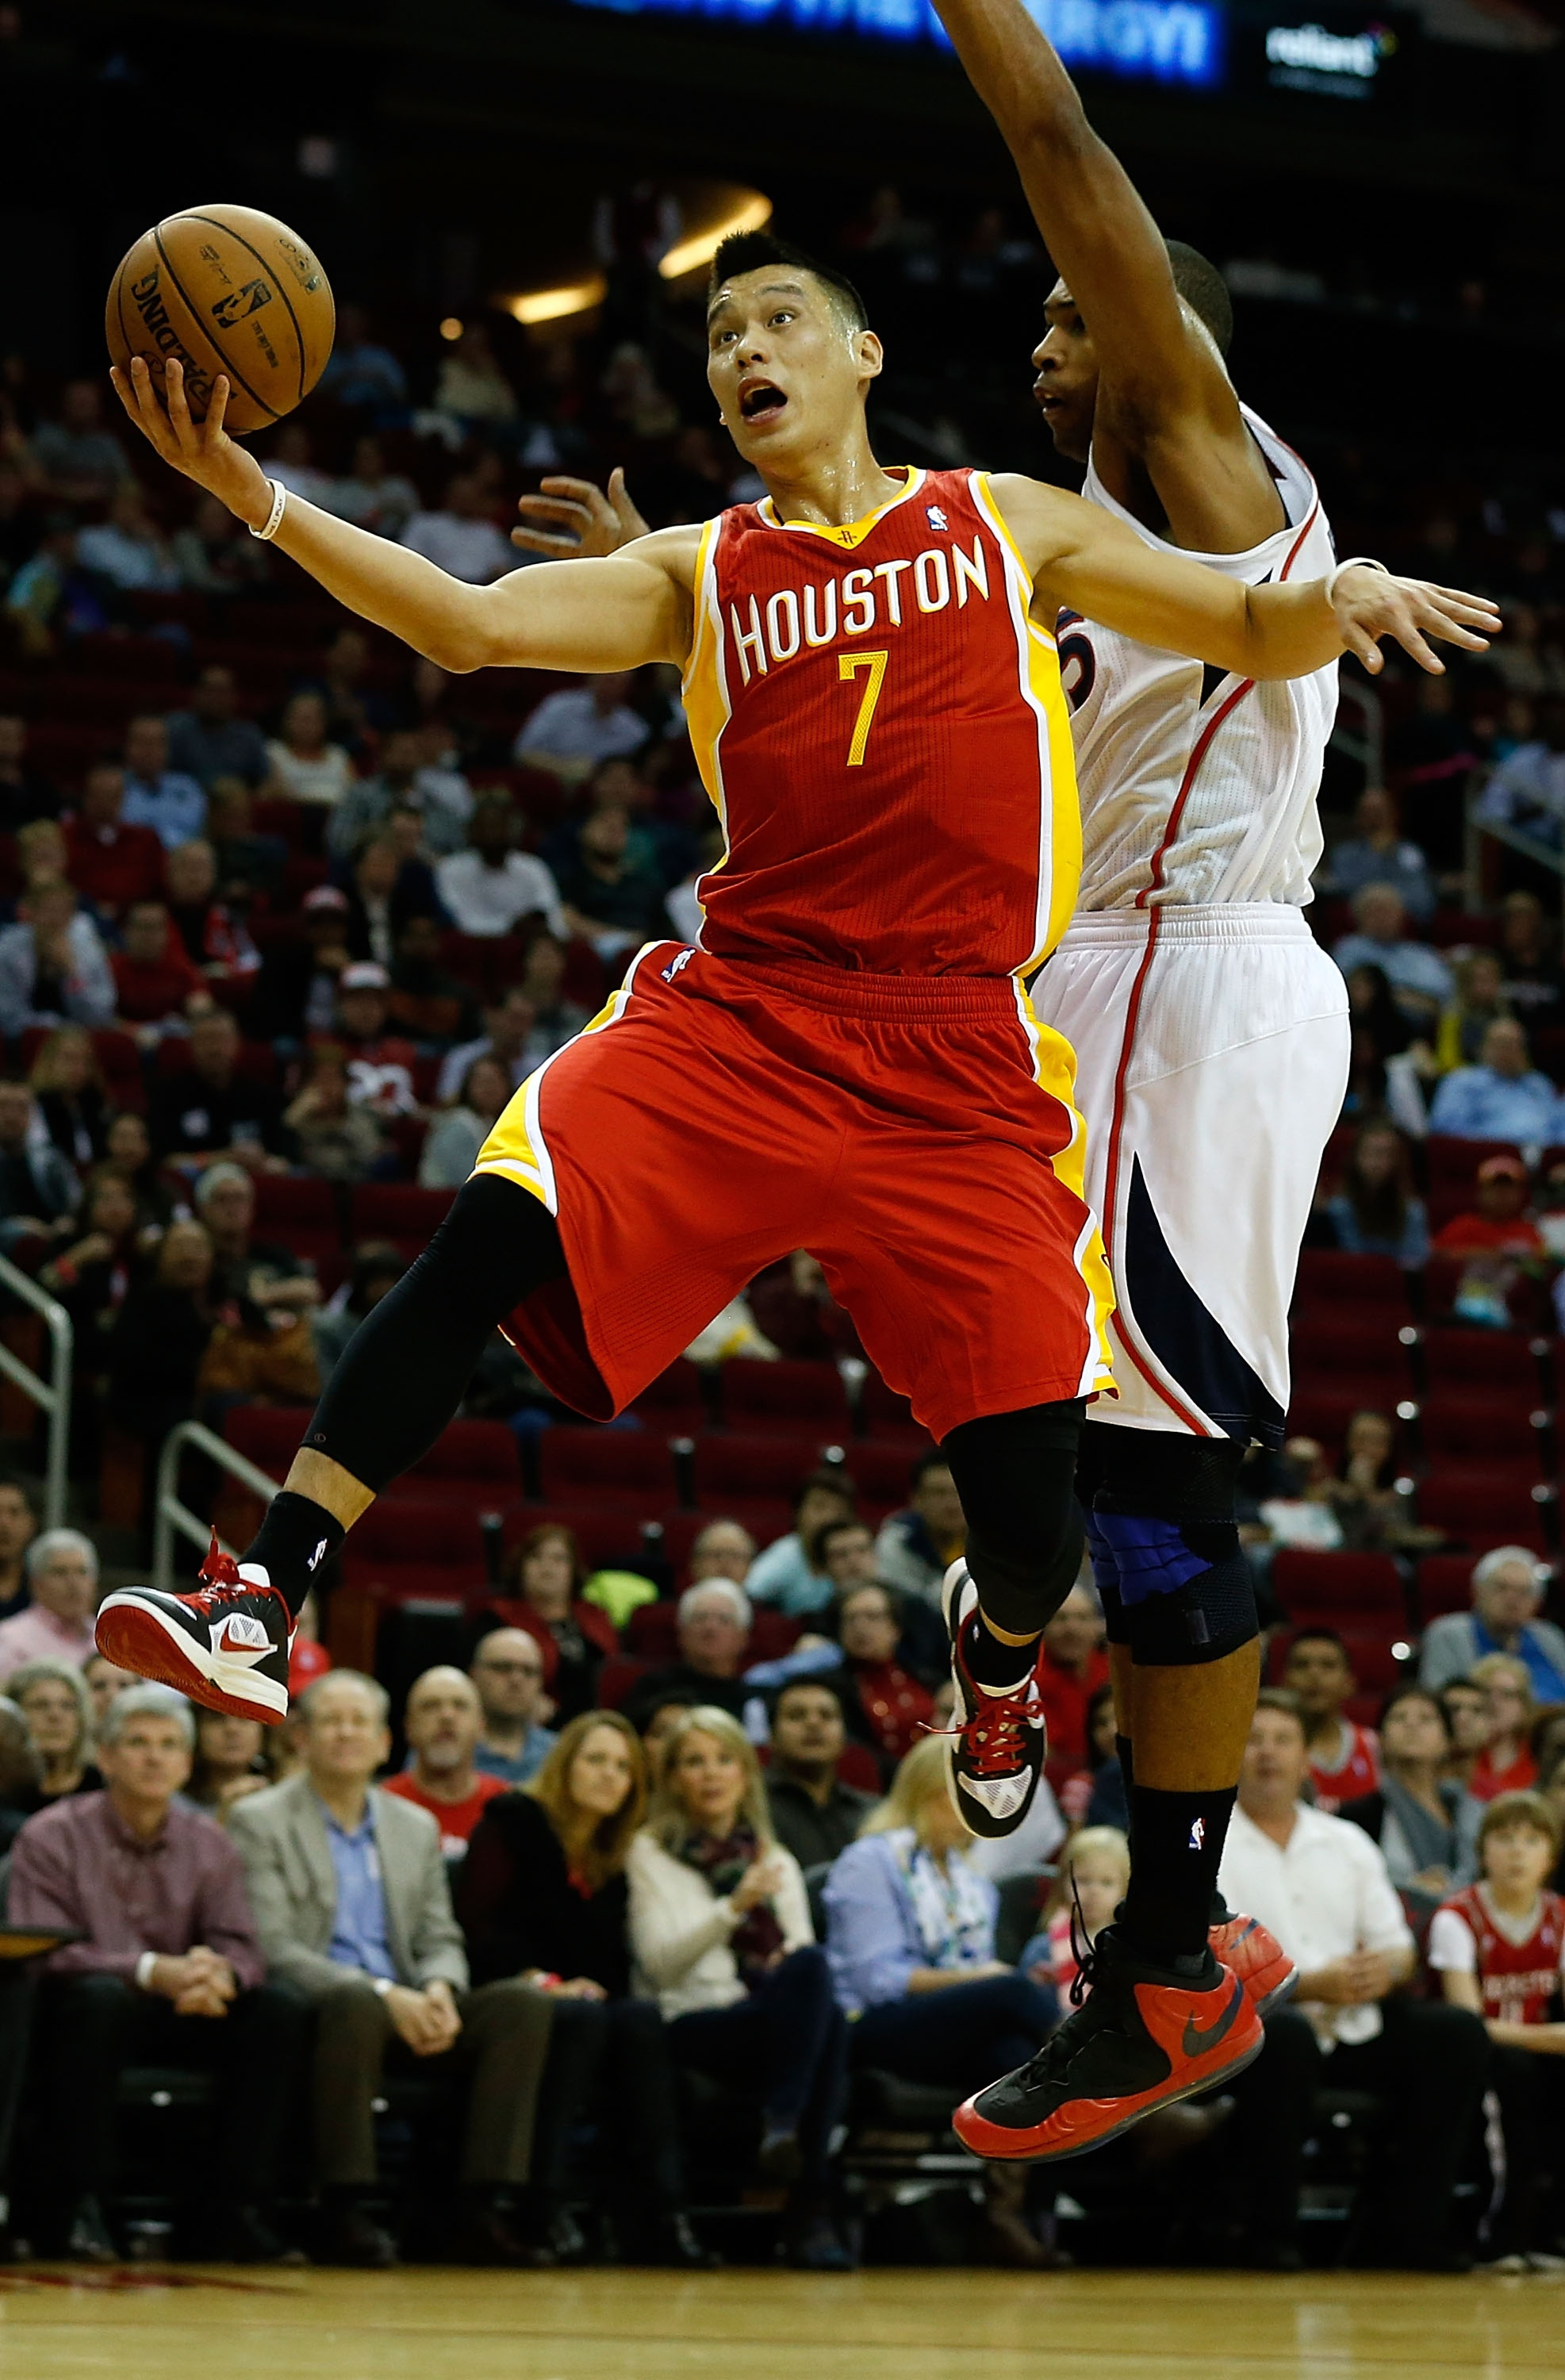 I like the Houston Rocket's Red & Yellow Jerseys